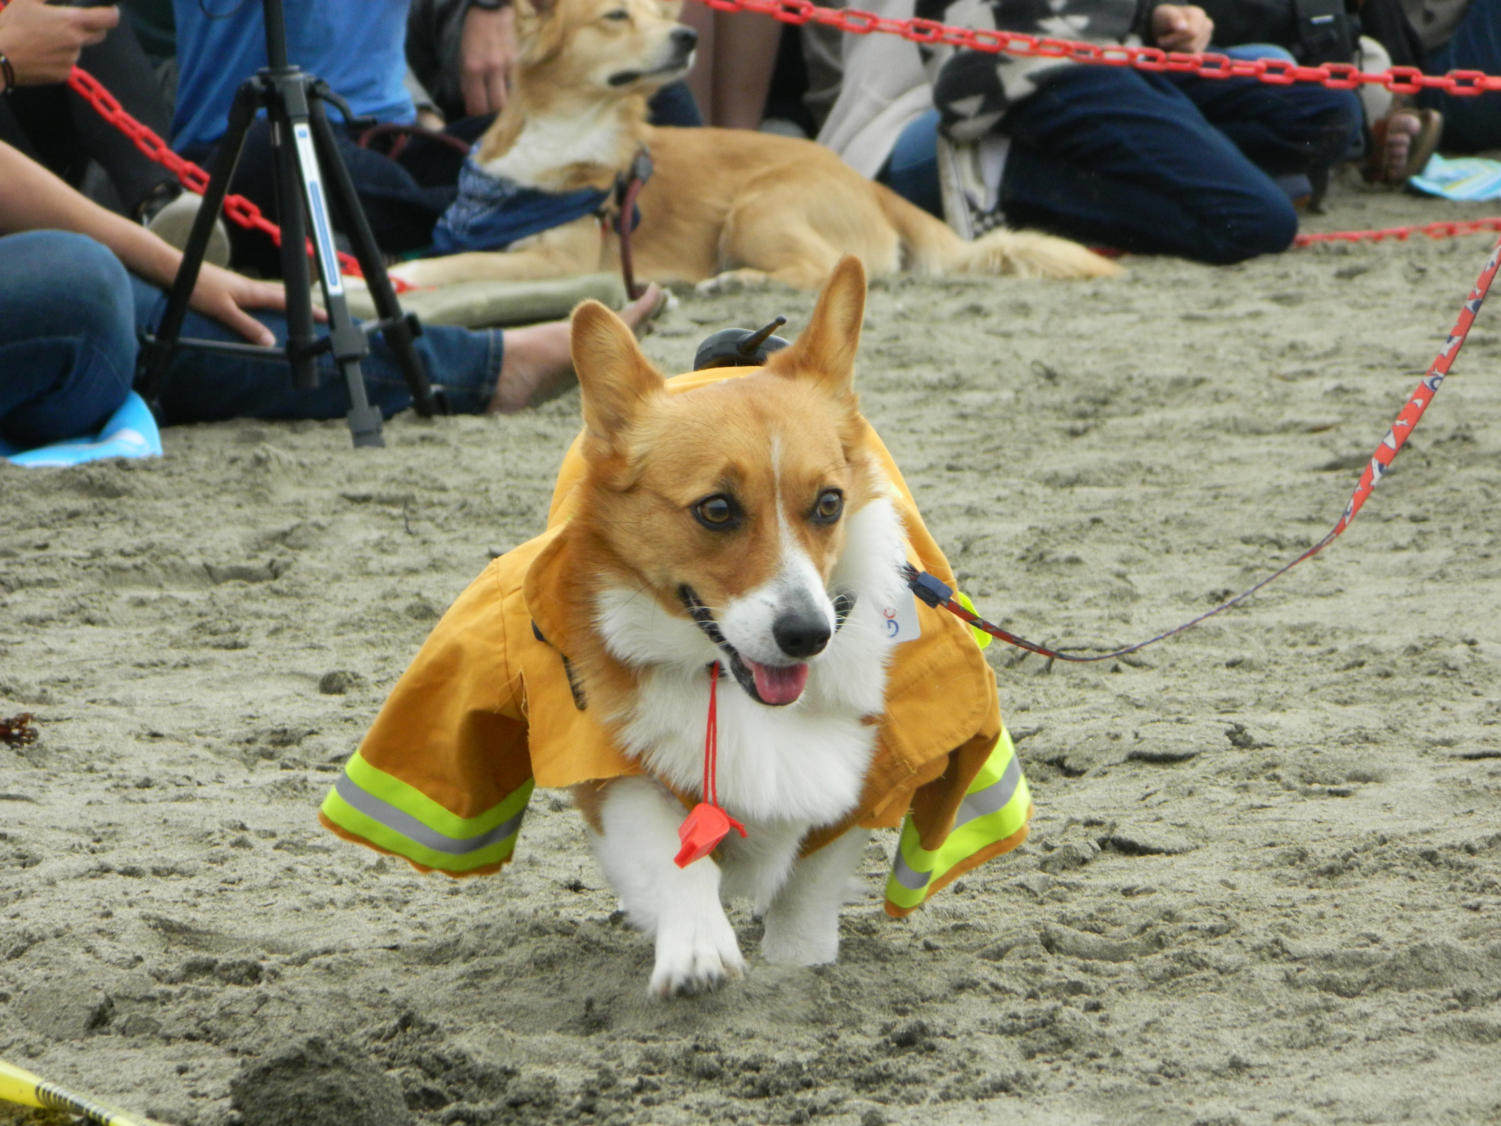 A+corgi+dressed+up+as+a+fireman+waddles+down+the+parade+before+judging.